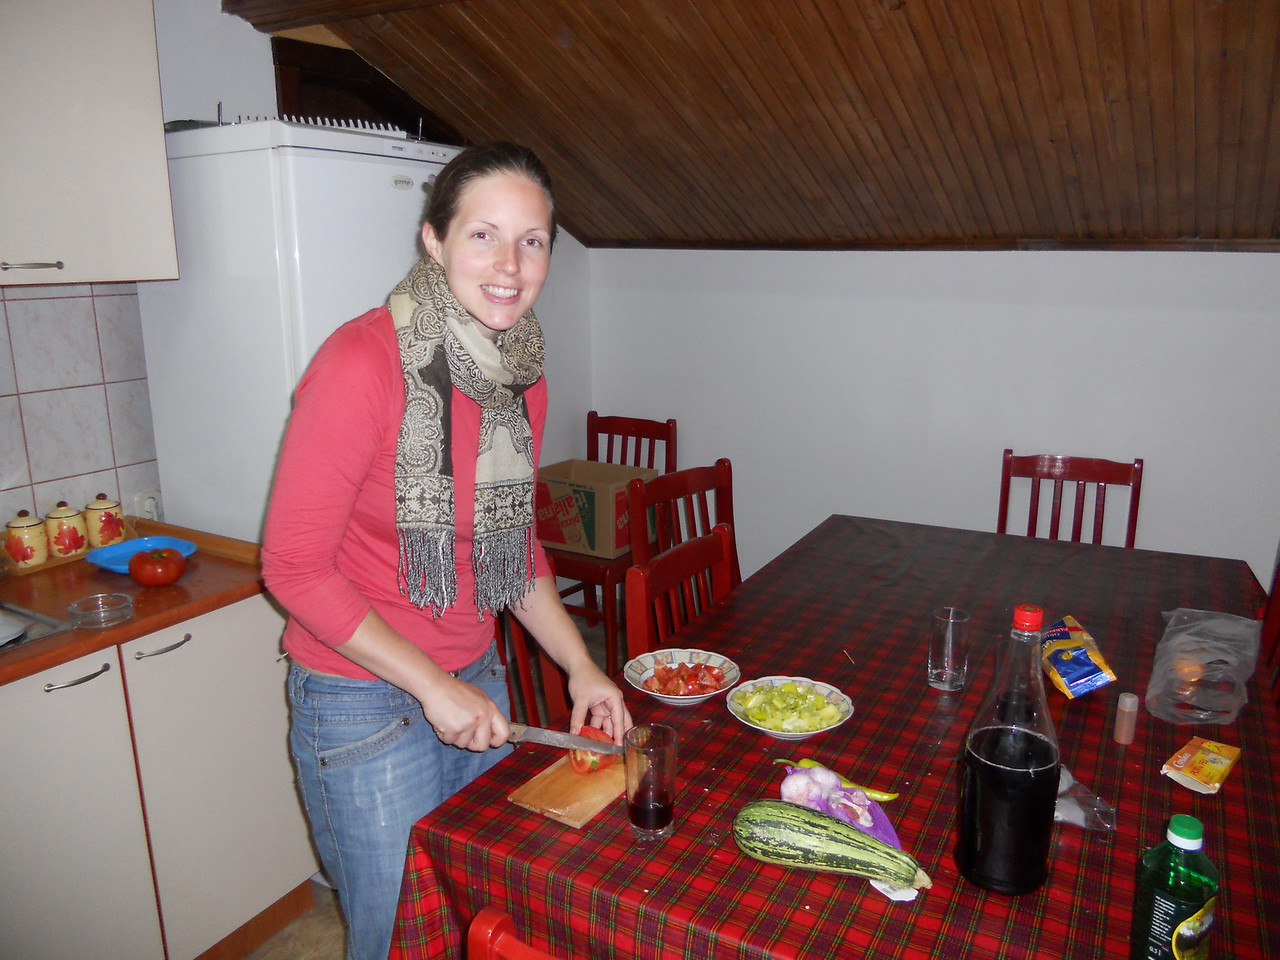 We make use of the free kitchen facilities to cook up a vegetable pilaf.